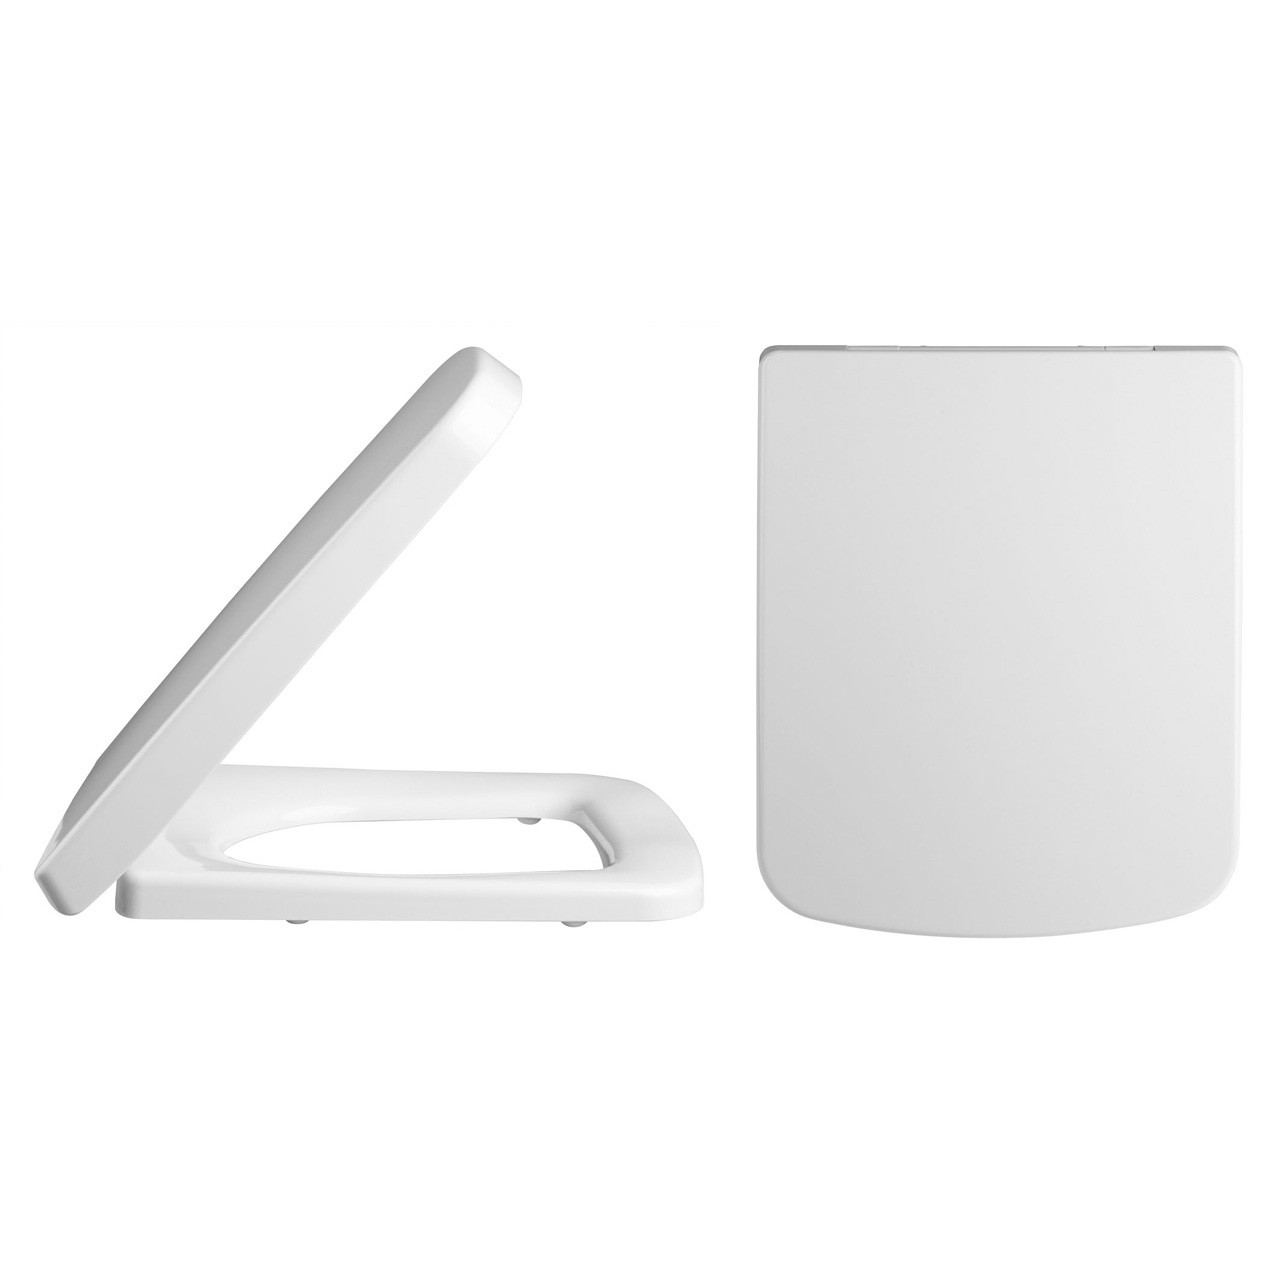 Premier Soft Close Square Toilet Seat with Quick Release - NCH198